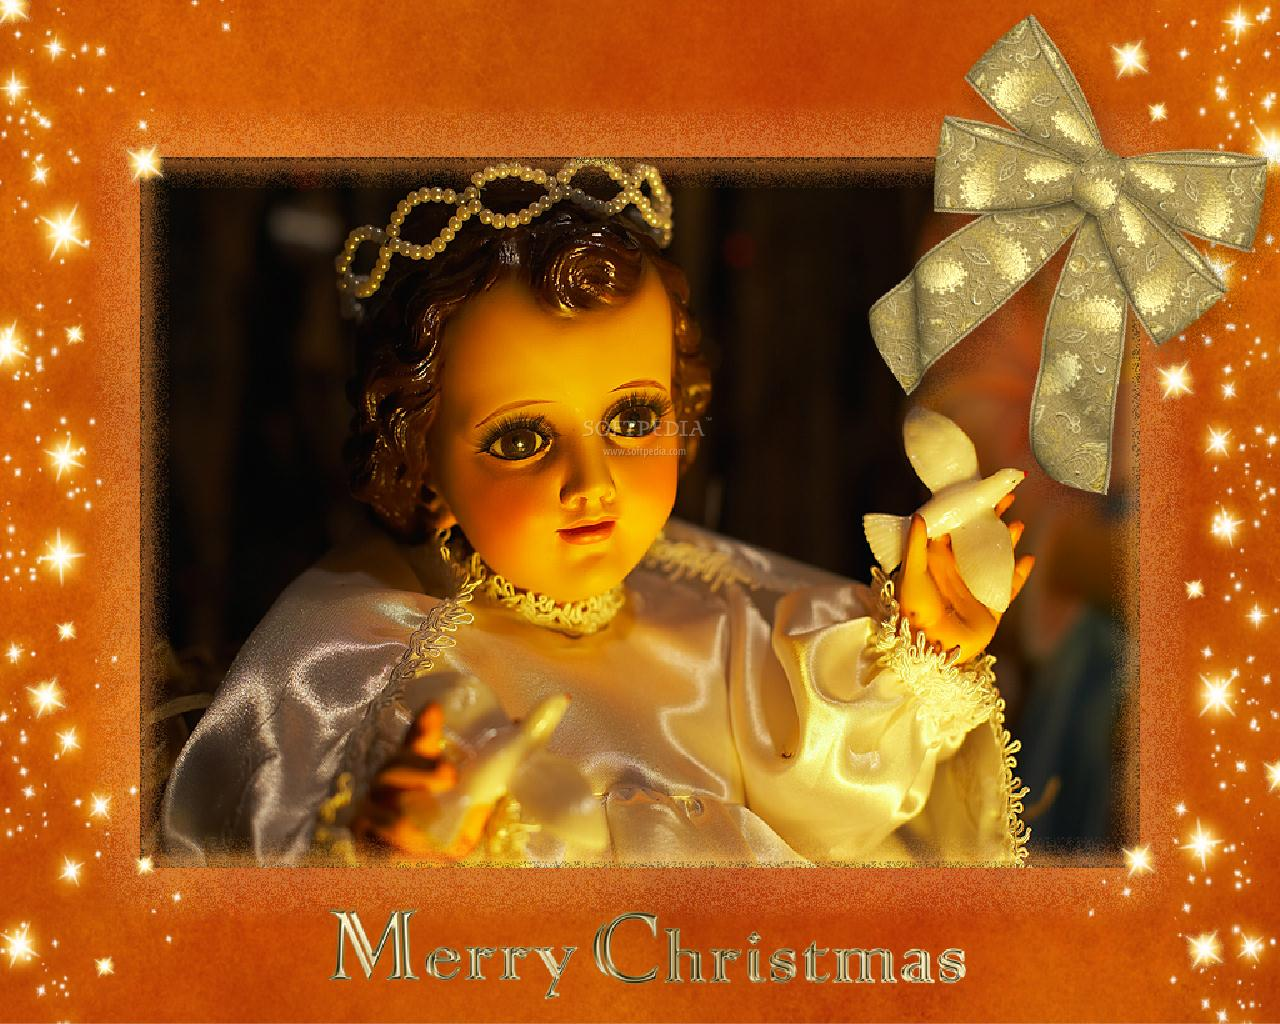 Christmas Angel   Animated Wallpaper   This is the image displayed by 1280x1024